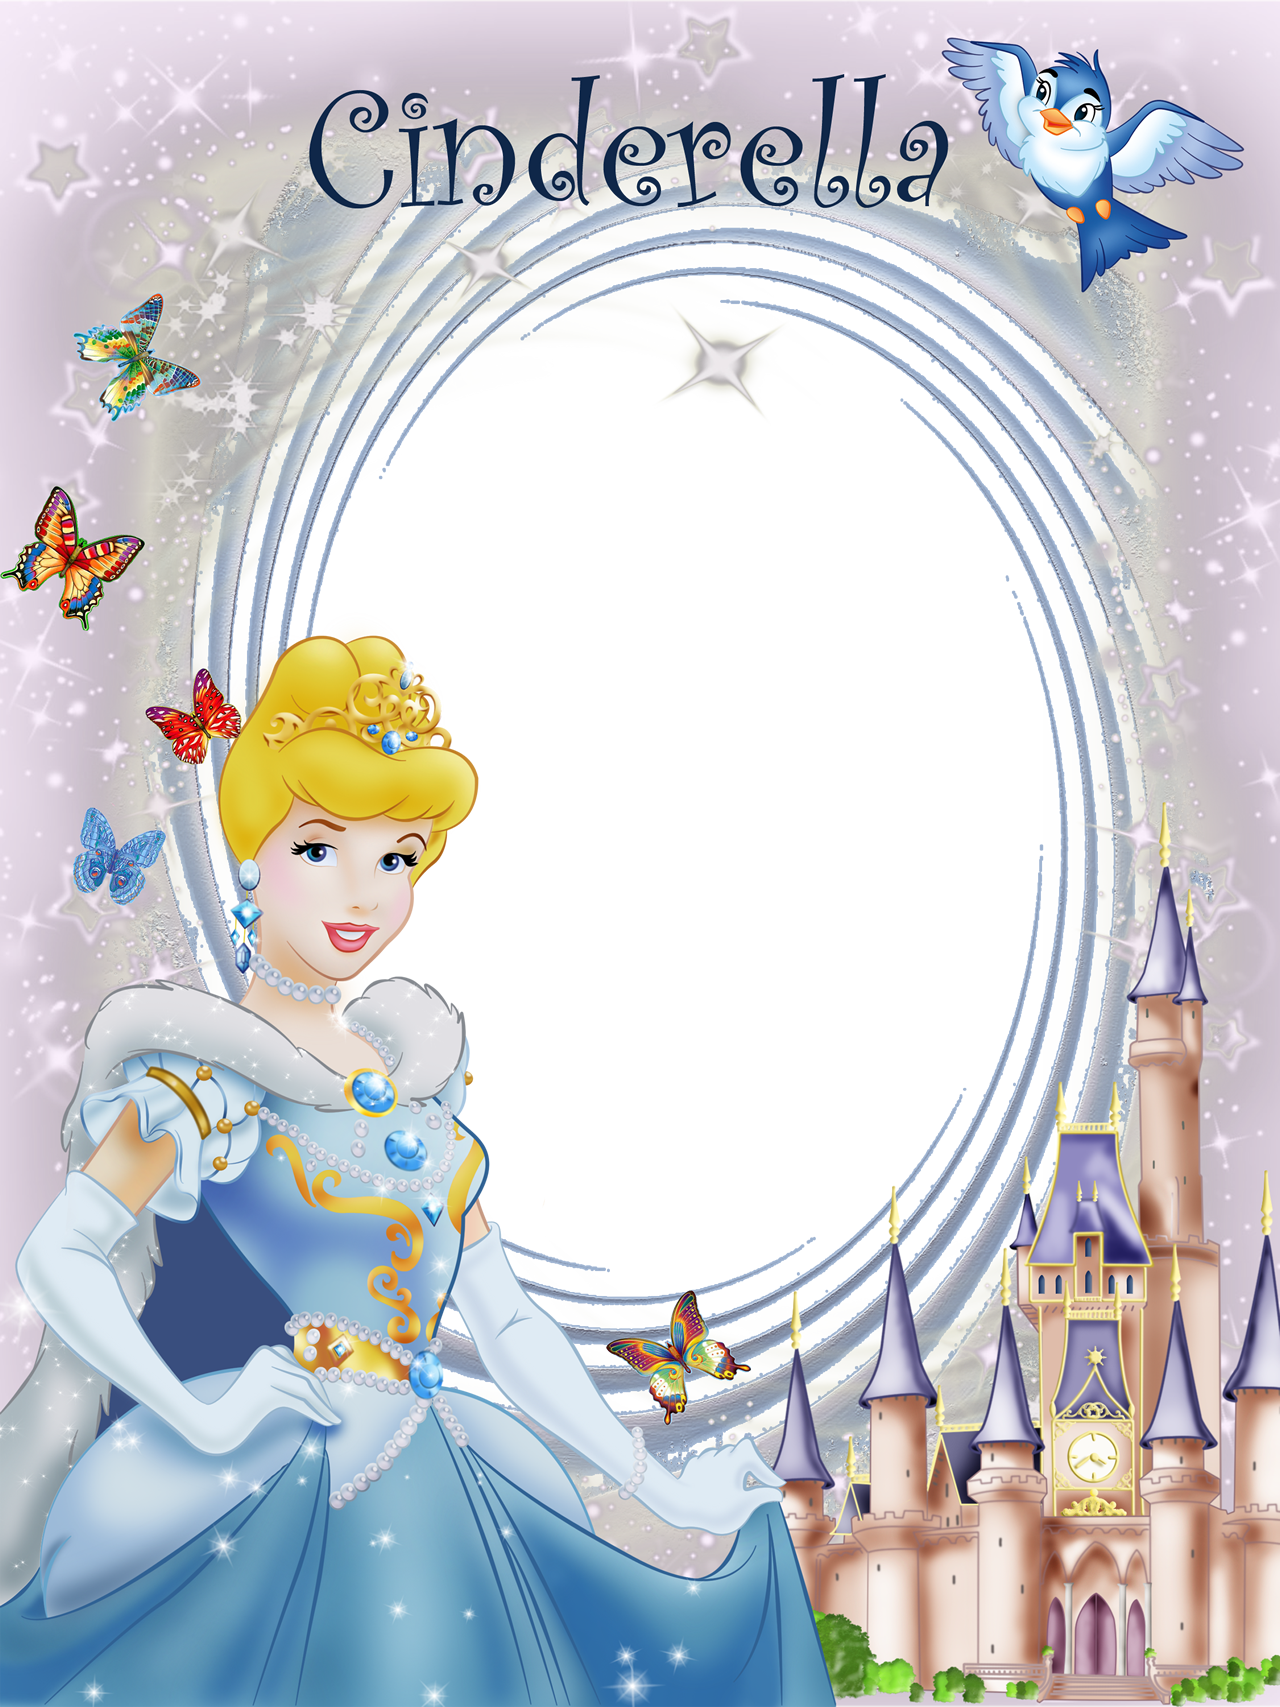 Transparent Frame Princess Cinderella | Borders and frames ...